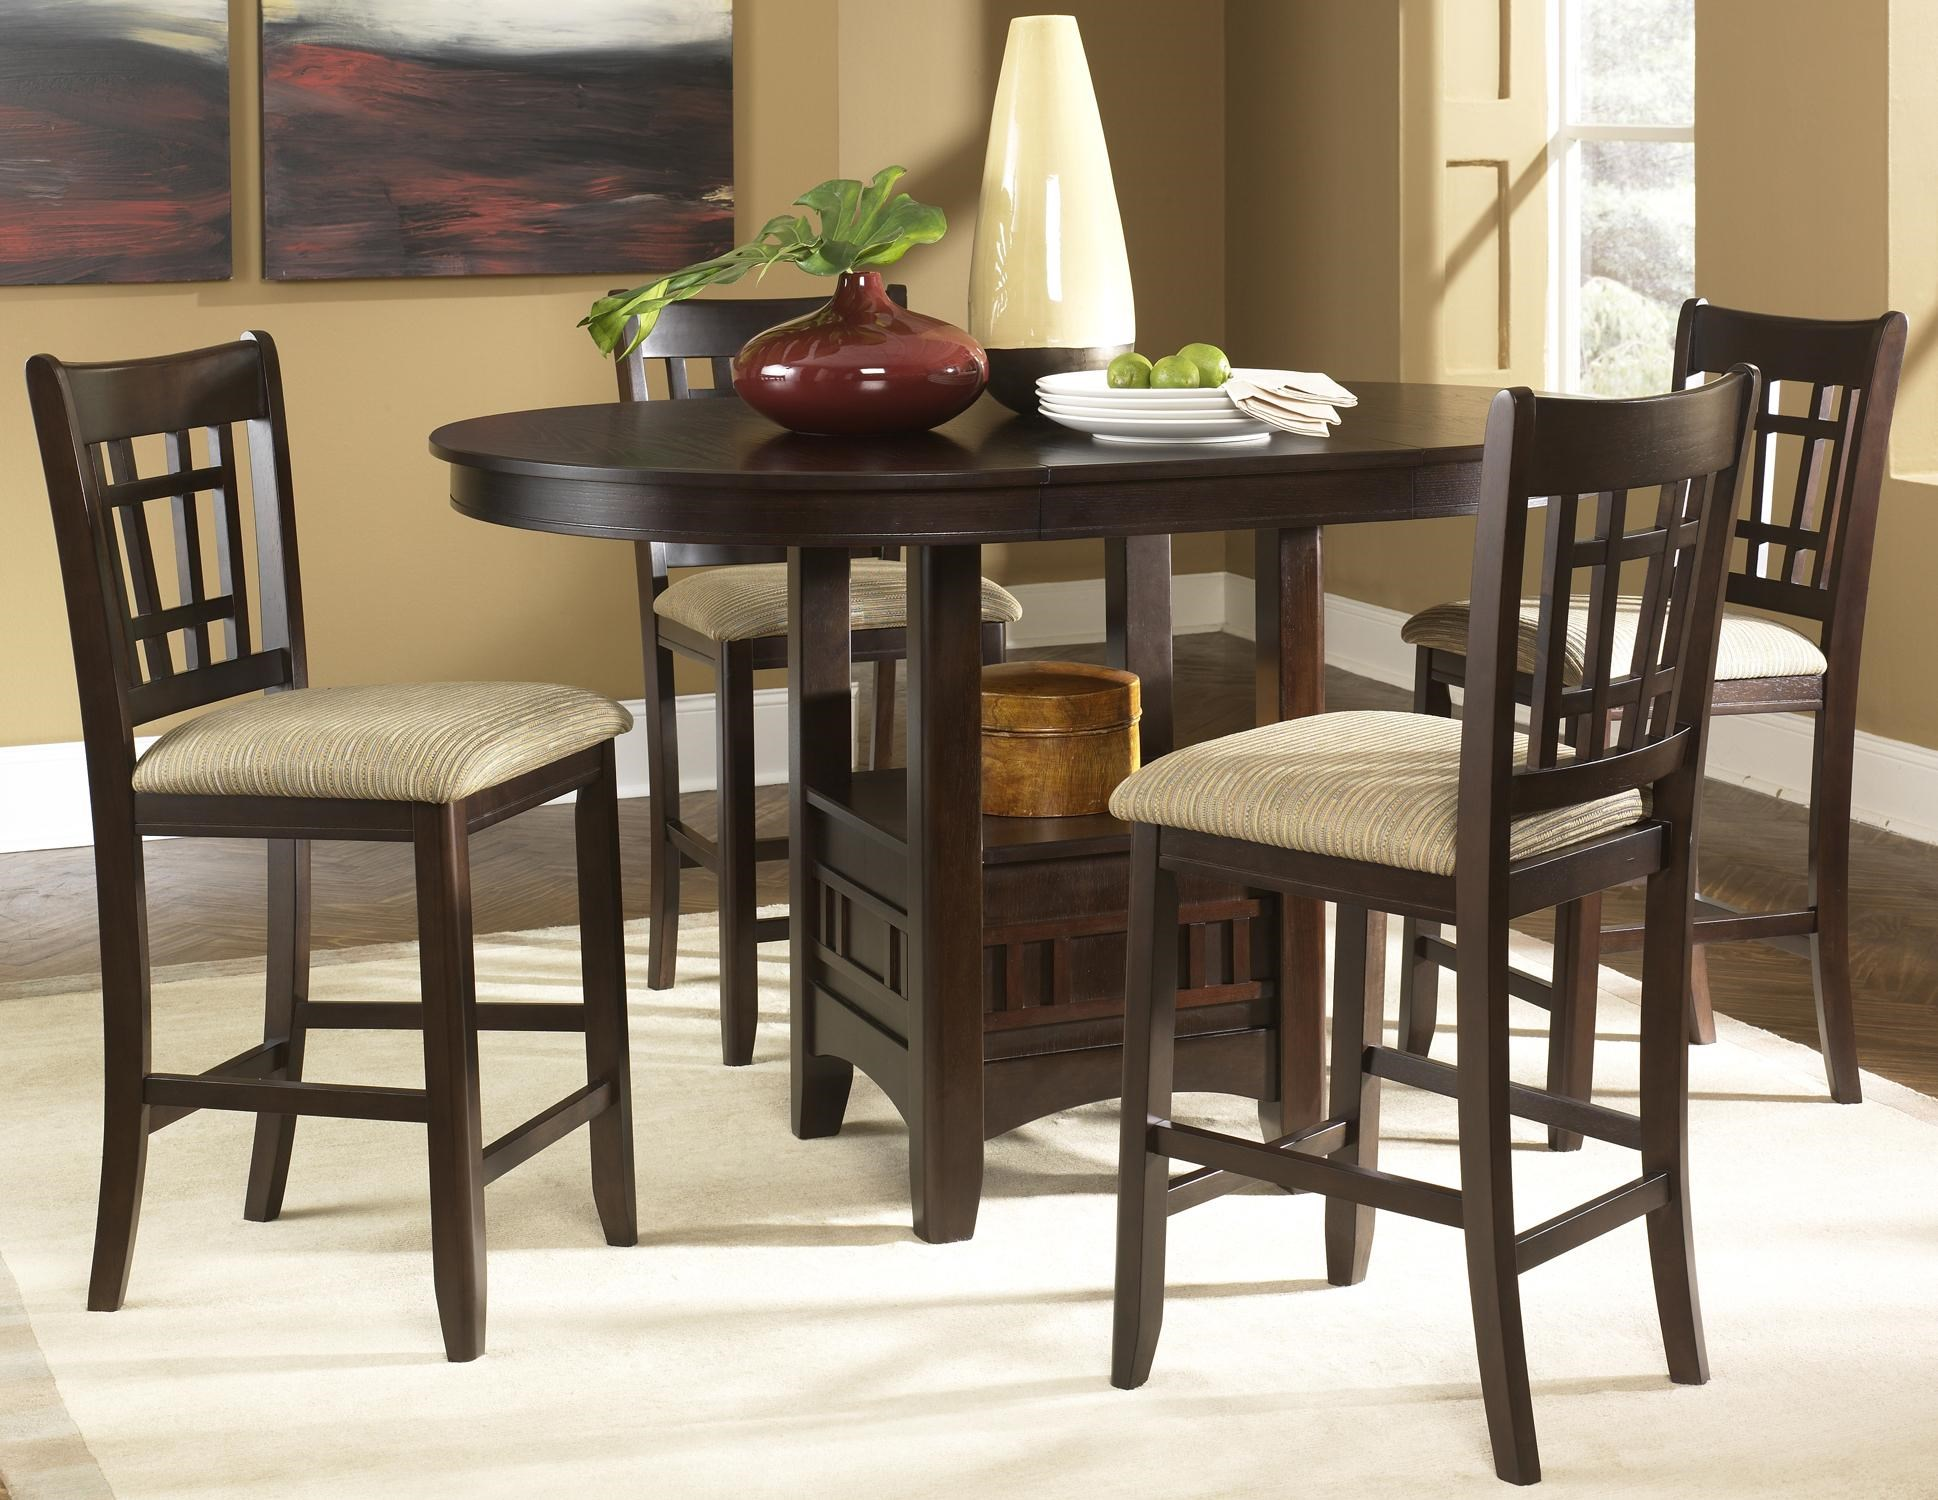 Etonnant Santa Rosa Oval Pub Table U0026 24 Inch Upholstered Bar Stool Set By Liberty  Furniture